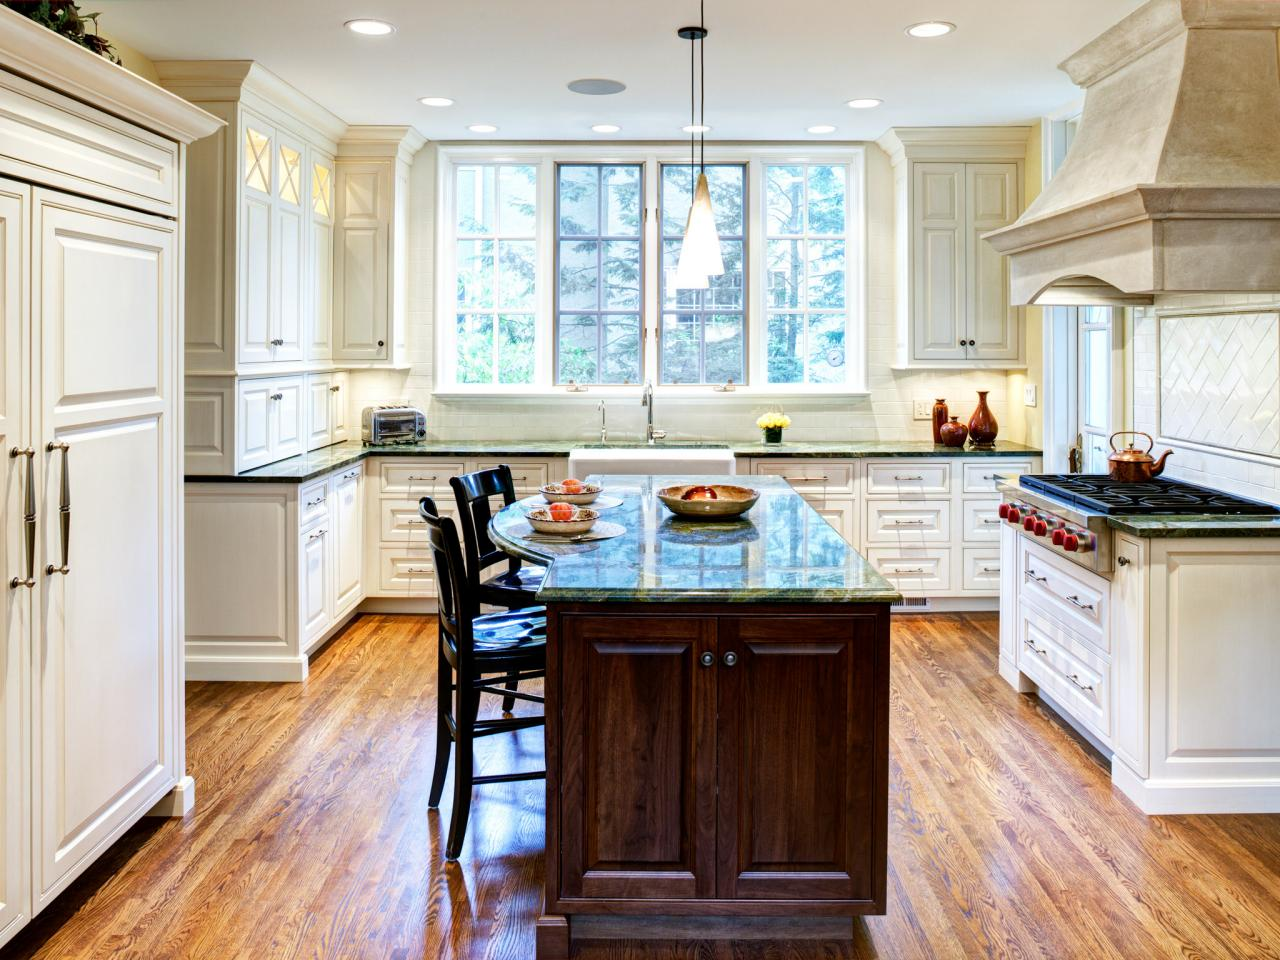 Large kitchen windows pictures ideas tips from hgtv hgtv for Kitchen ideas no window